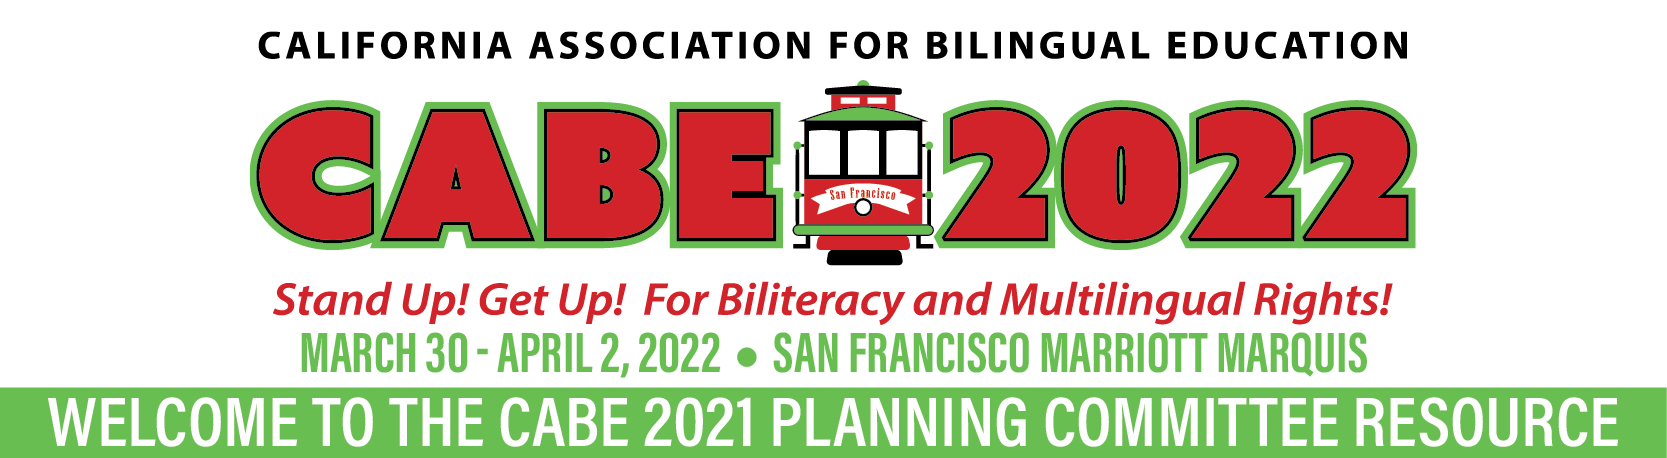 CABE 2022 Header for the Planning Committee Page